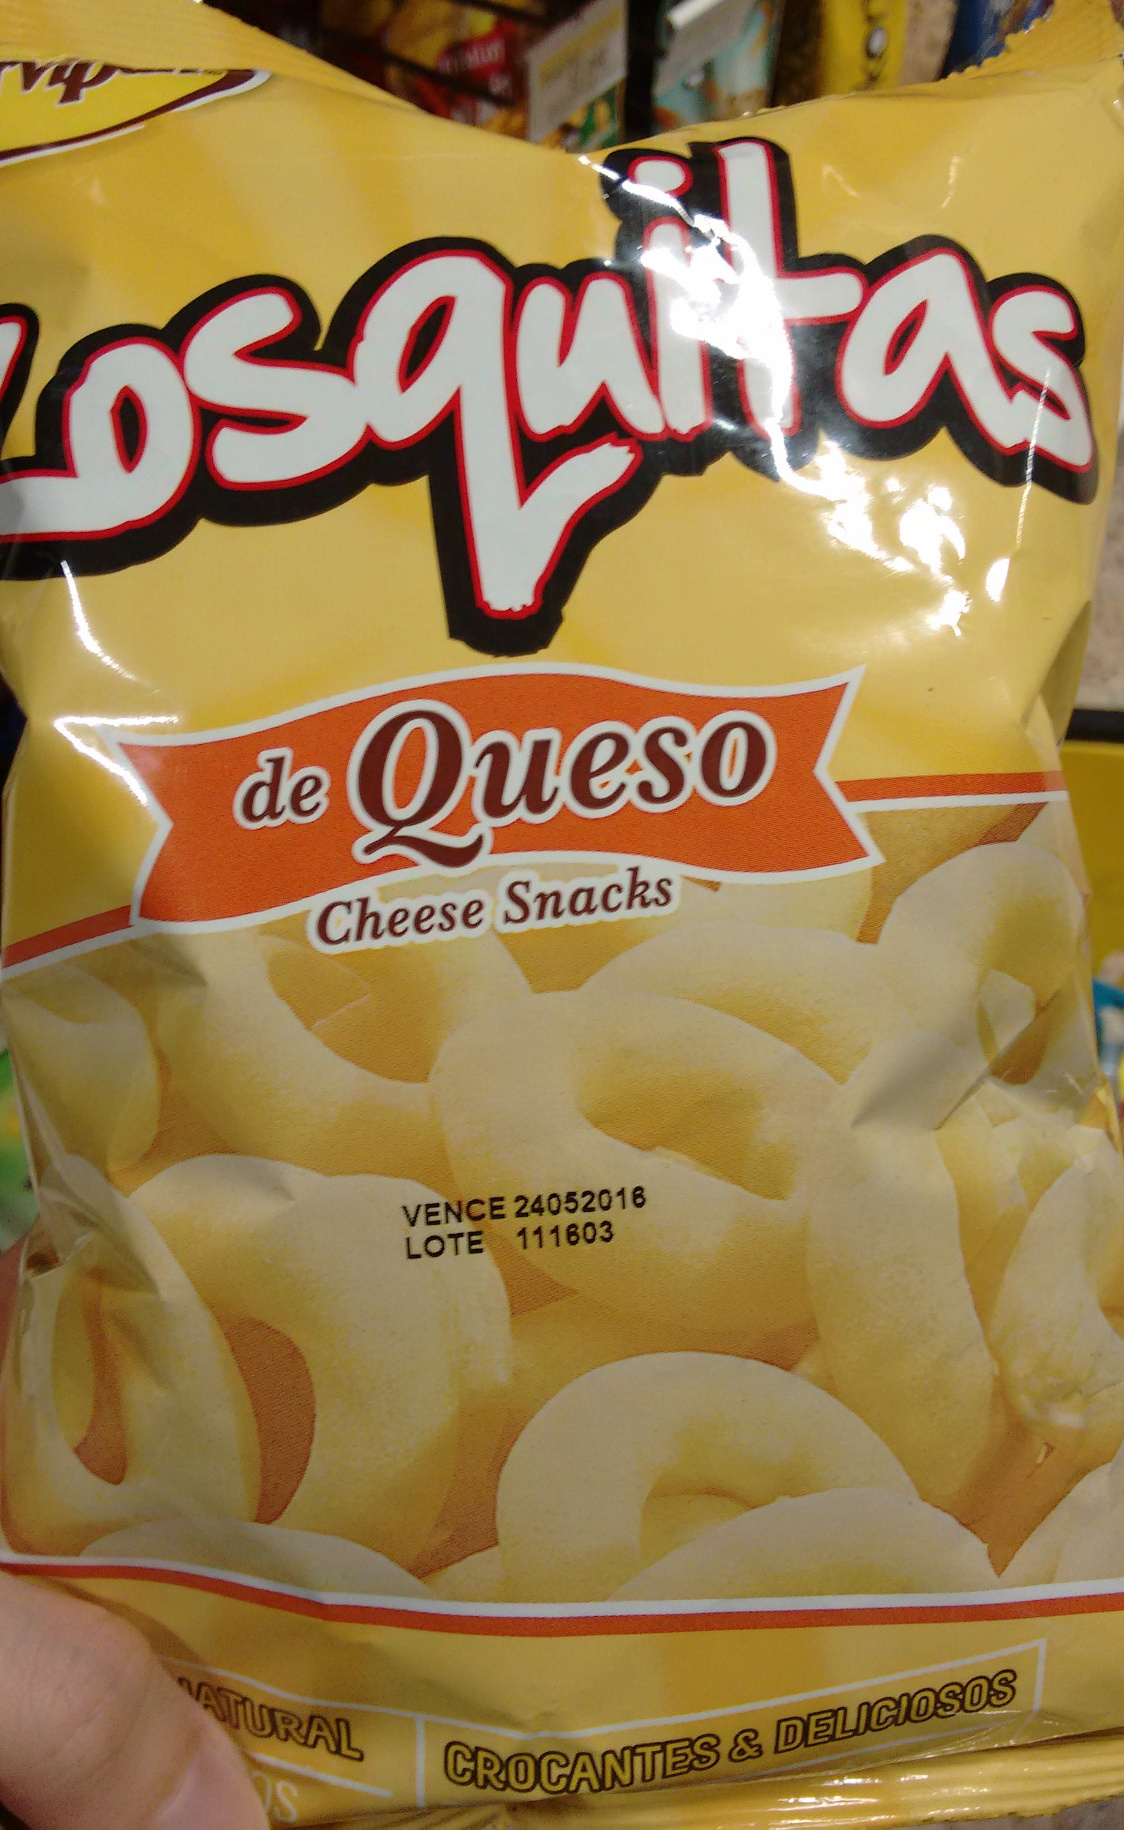 Rosquitas de Queso - Product